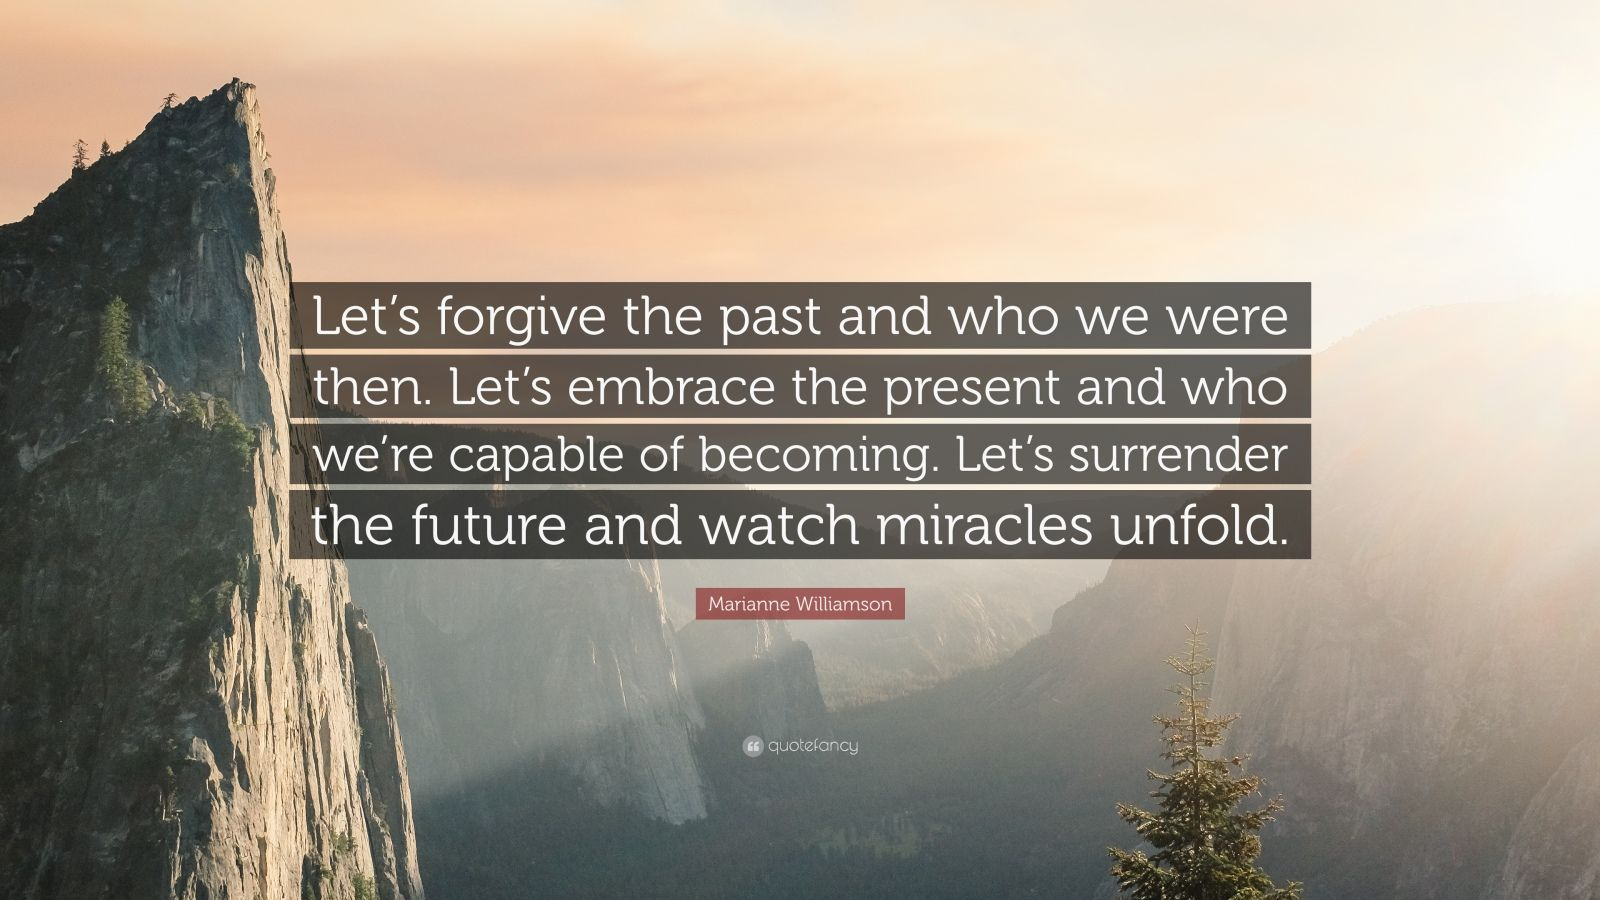 """Marianne Williamson Quote: """"Let's forgive the past and who we were then. Let's embrace the present and who we're capable of becoming. Let's surrender the future and watch miracles unfold."""""""